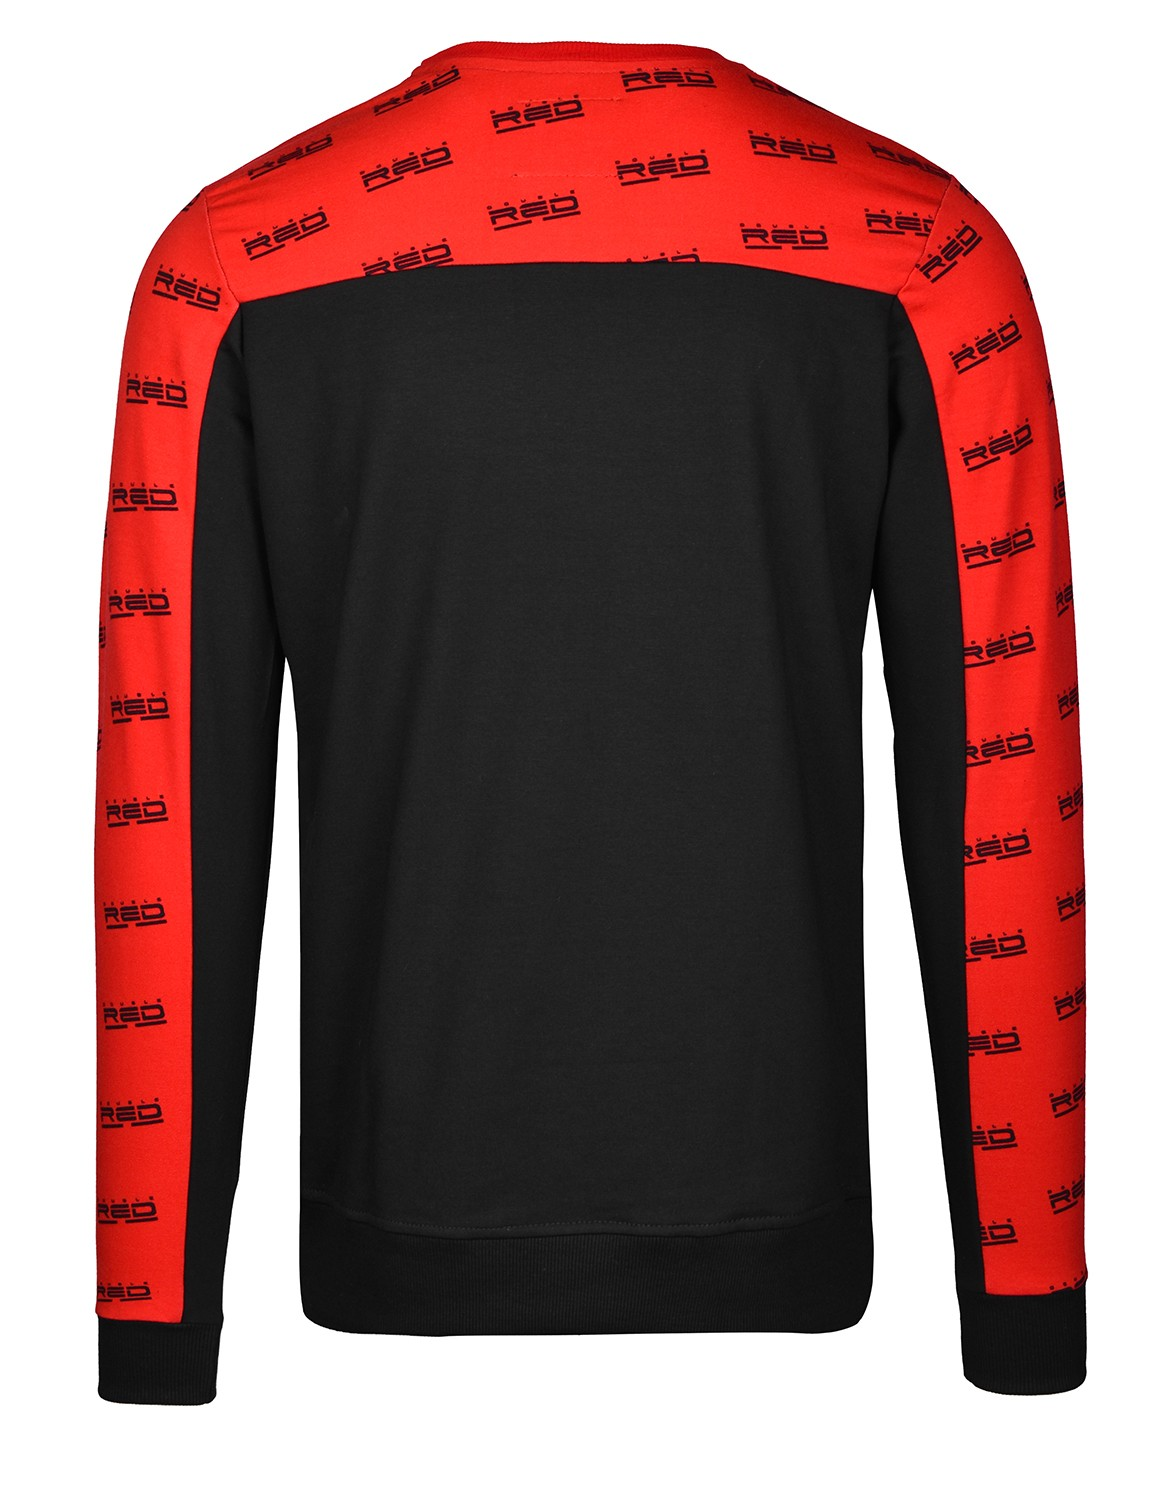 Sweatshirt UTTER FULL LOGO Red